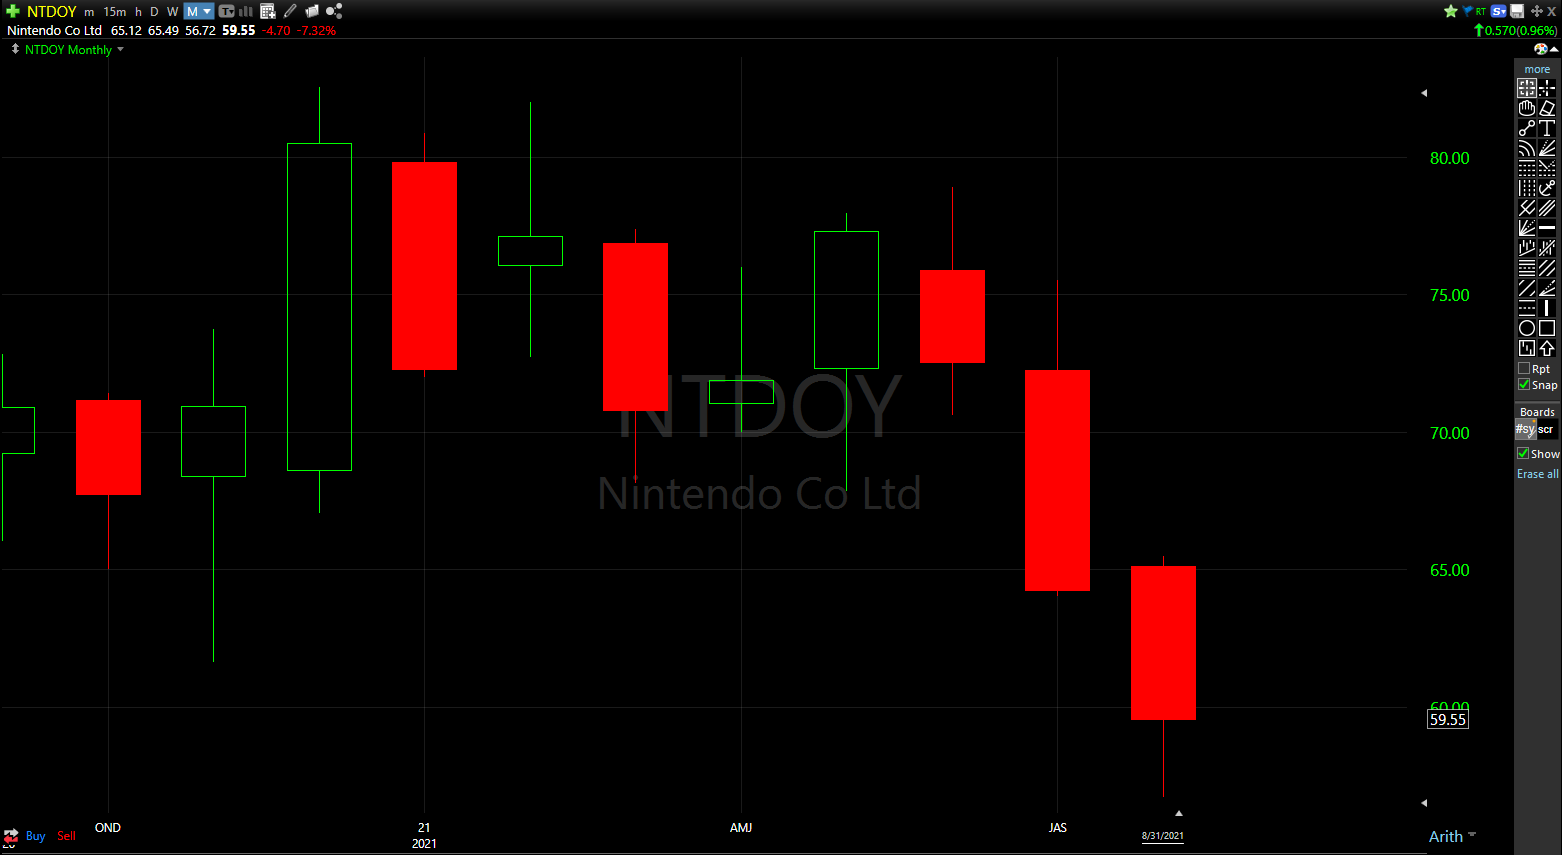 Nintendo shares are down 27% from the all-time high set late in 2020.